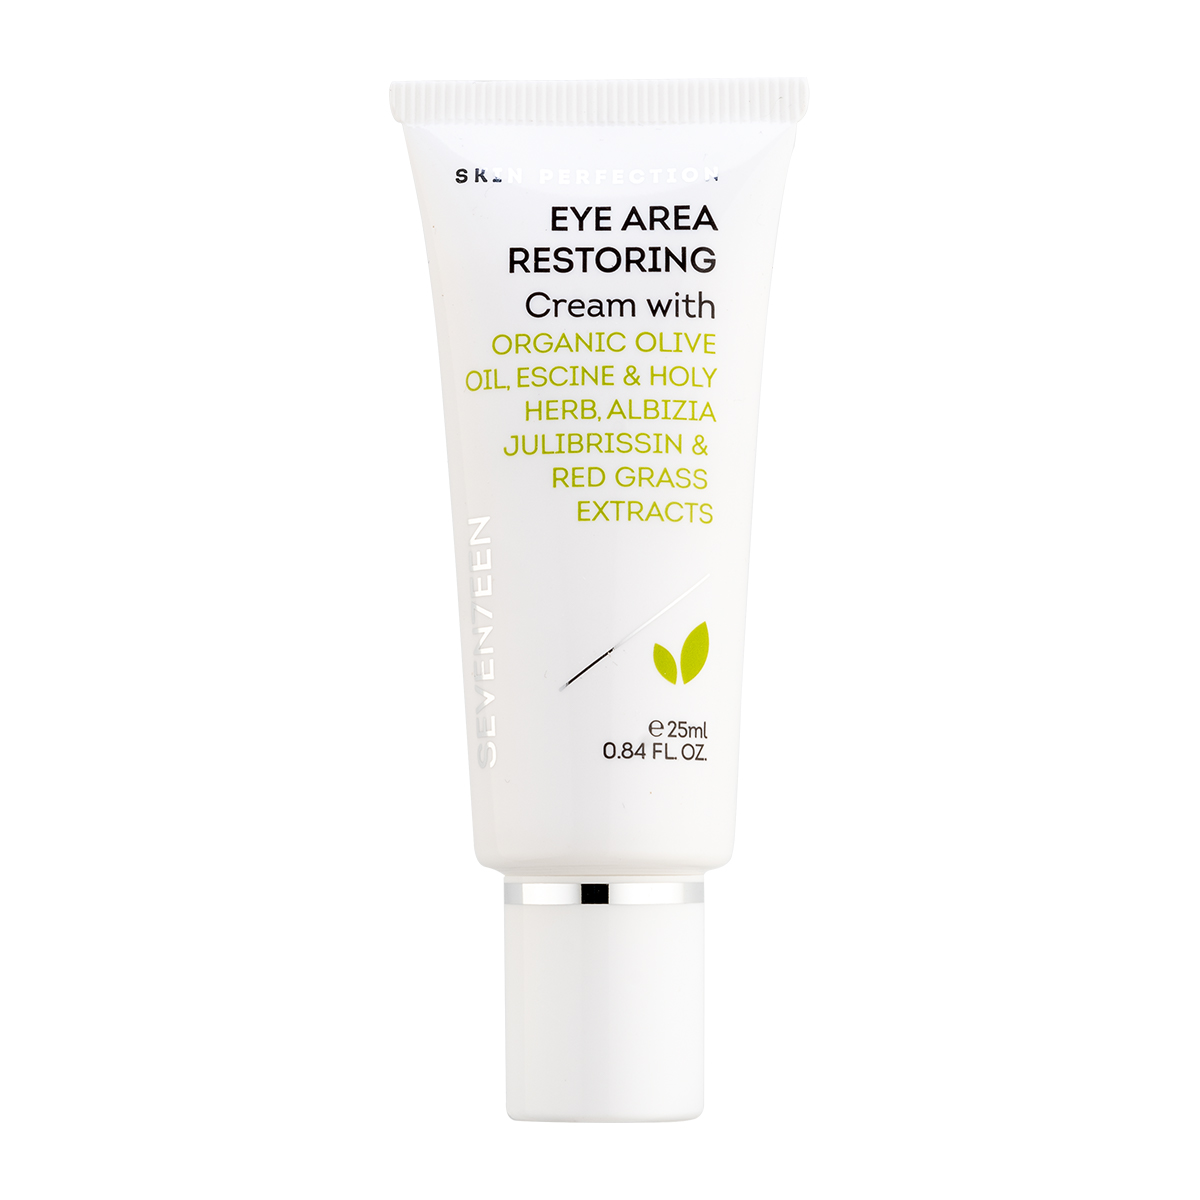 Eye Area Restoring Cream